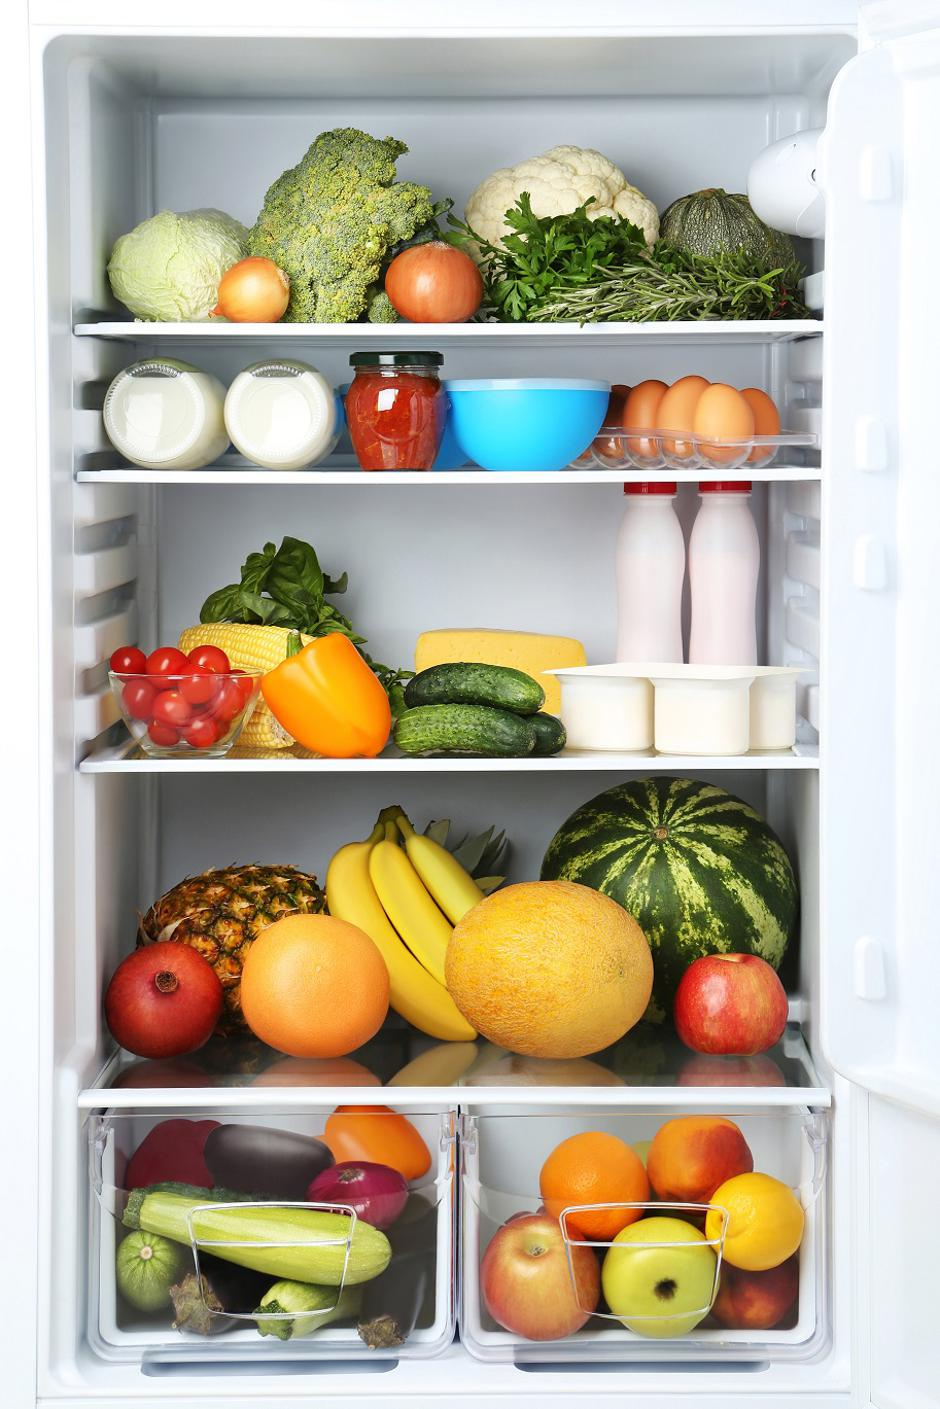 Open fridge full of vegetables and fruits | Autor: Dreamstime